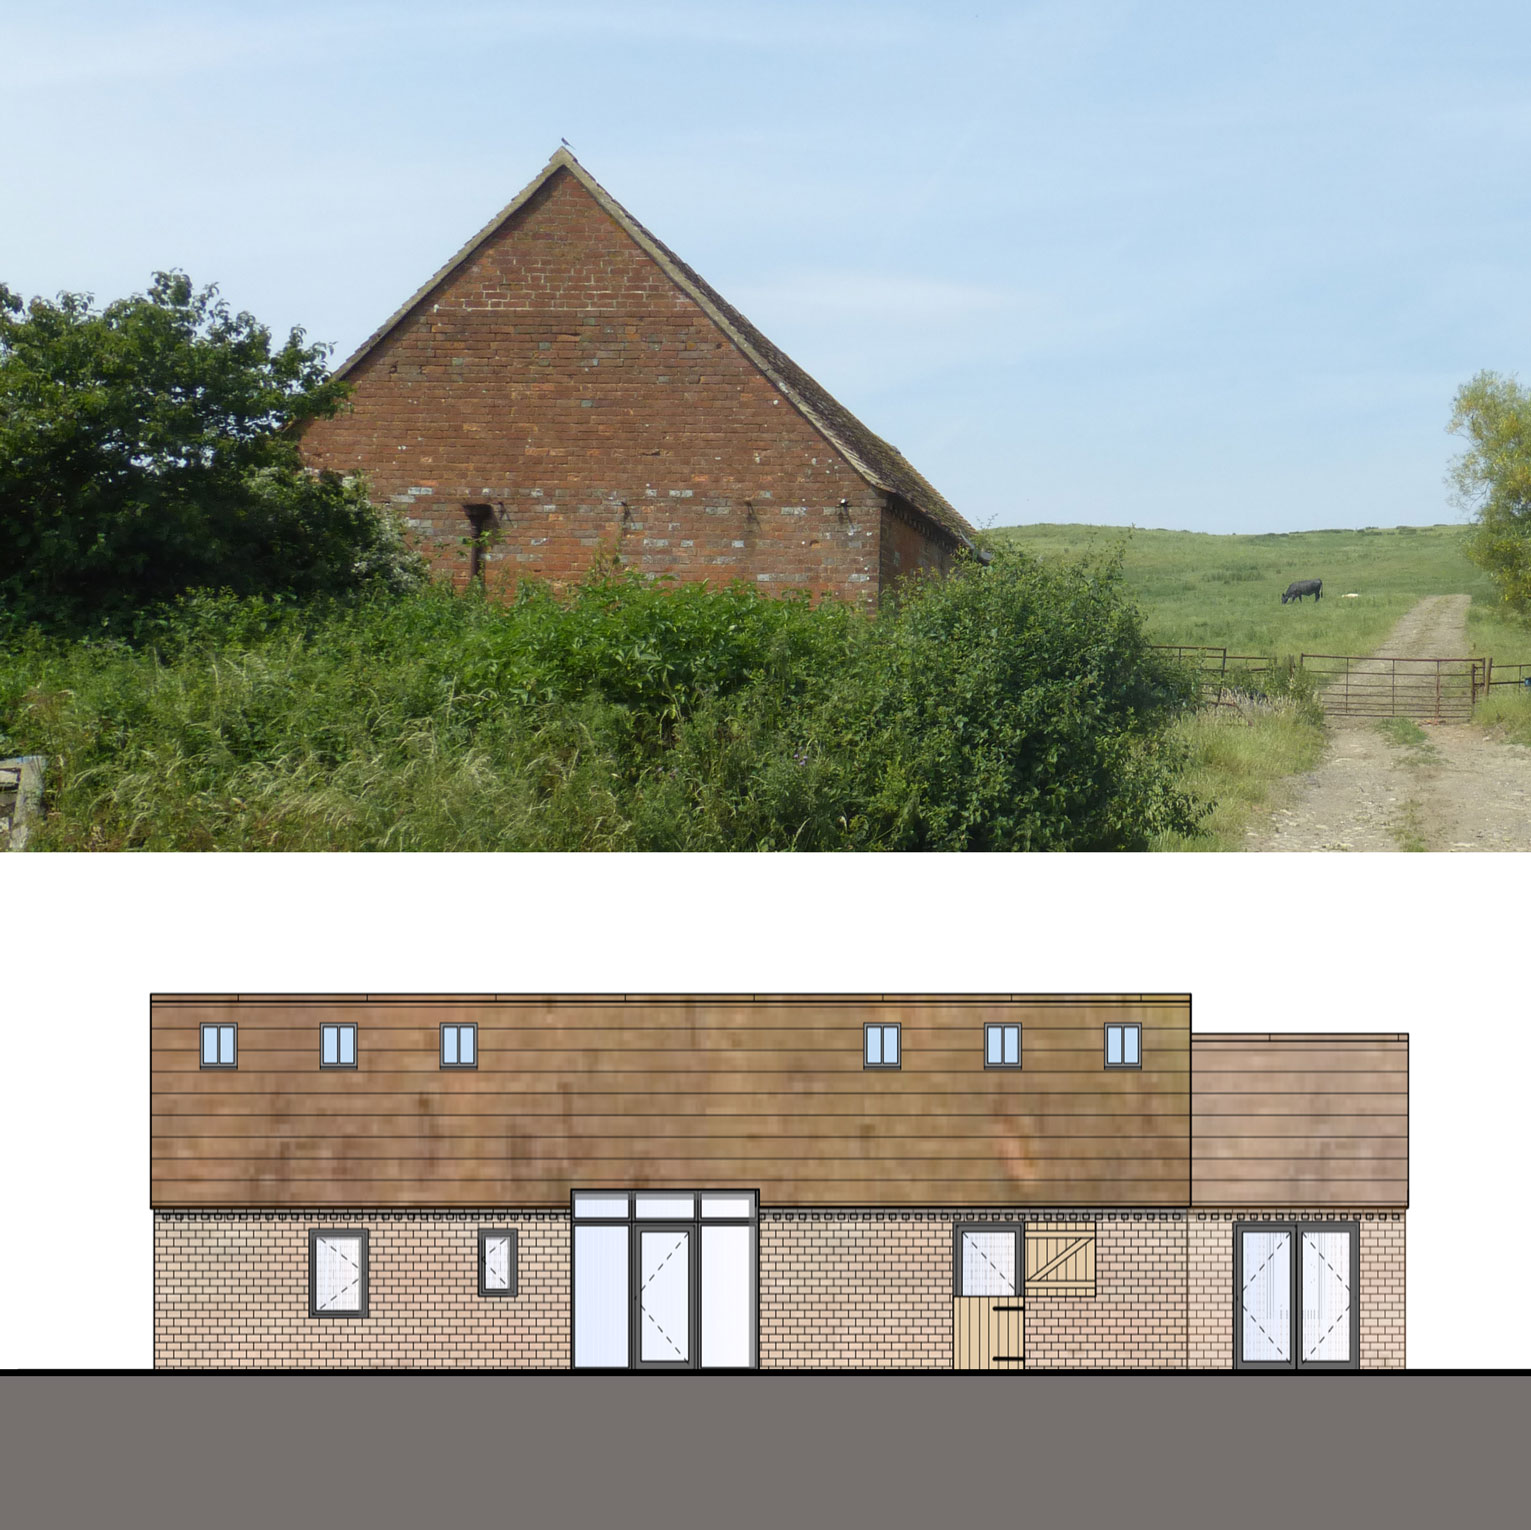 Ernest Cook Trust, West Waddy, Architects, Town Planners, Urban Designers